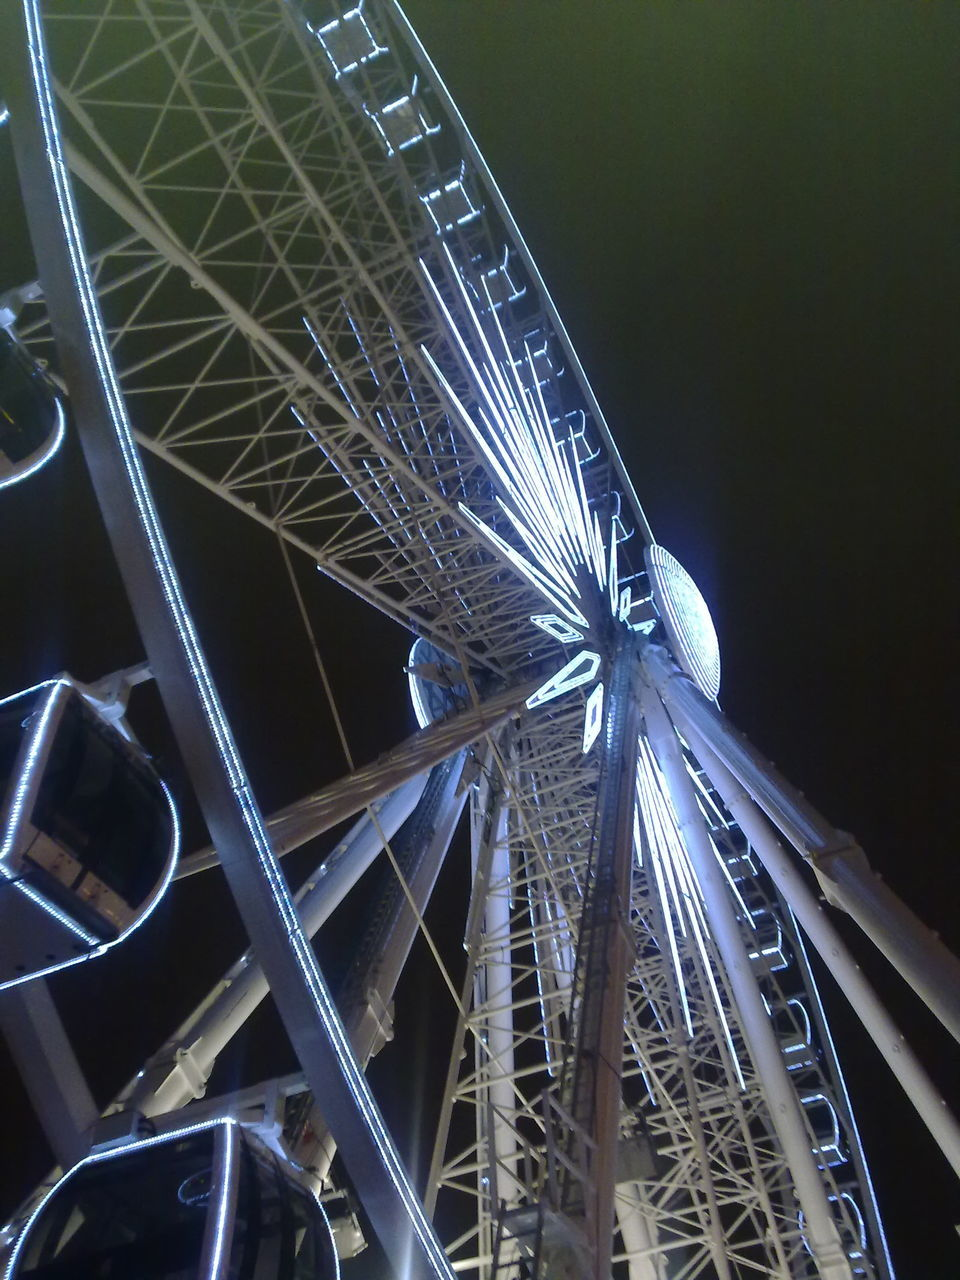 Low Angle View Of Ferris Wheel Against Dark Sky